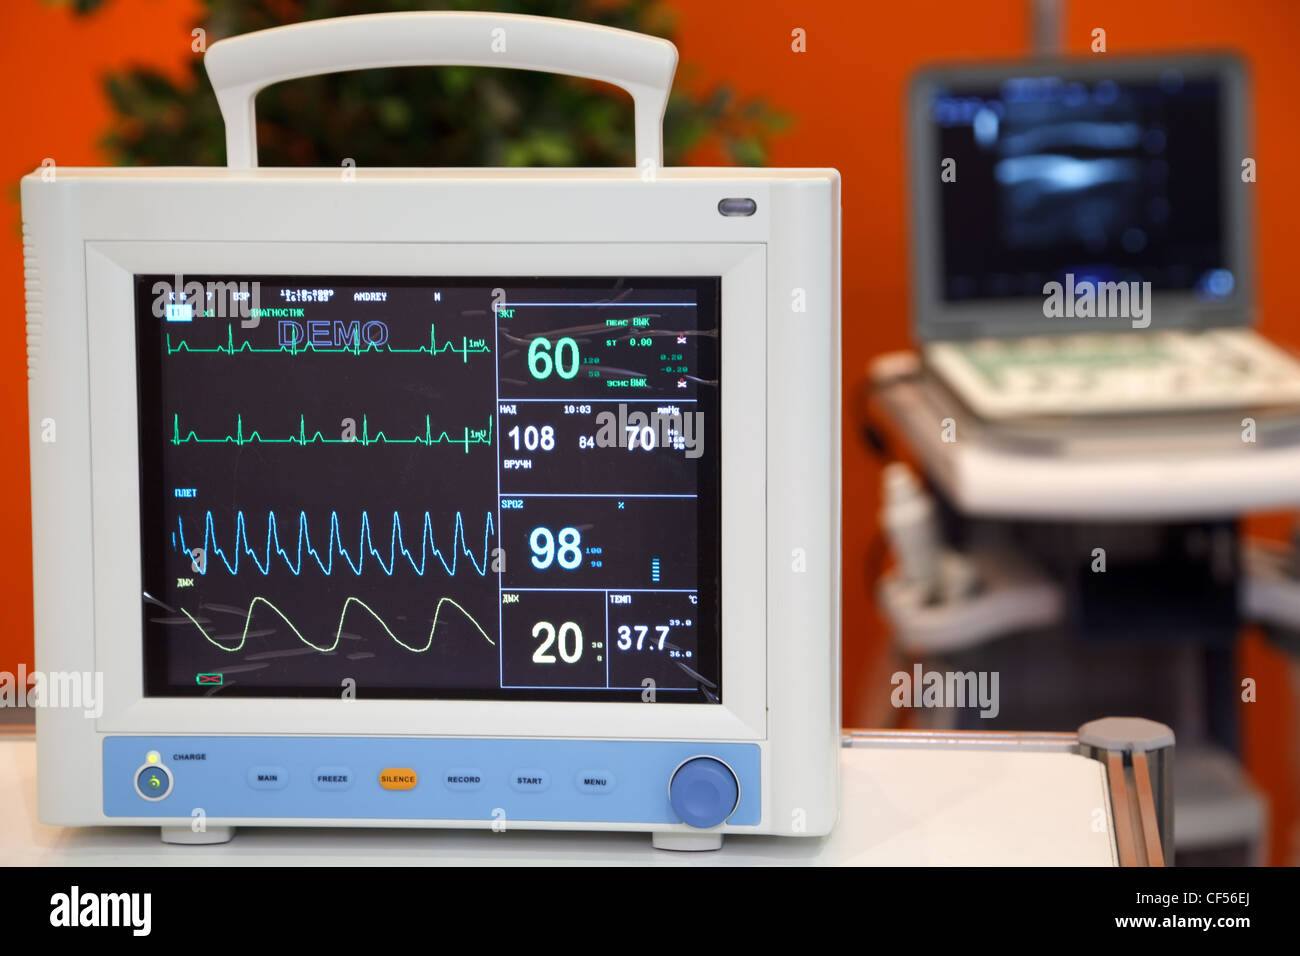 Cardiac Monitor with Vital Signs: EKG, Pulse Oximetry, Blood Pressure - Stock Image